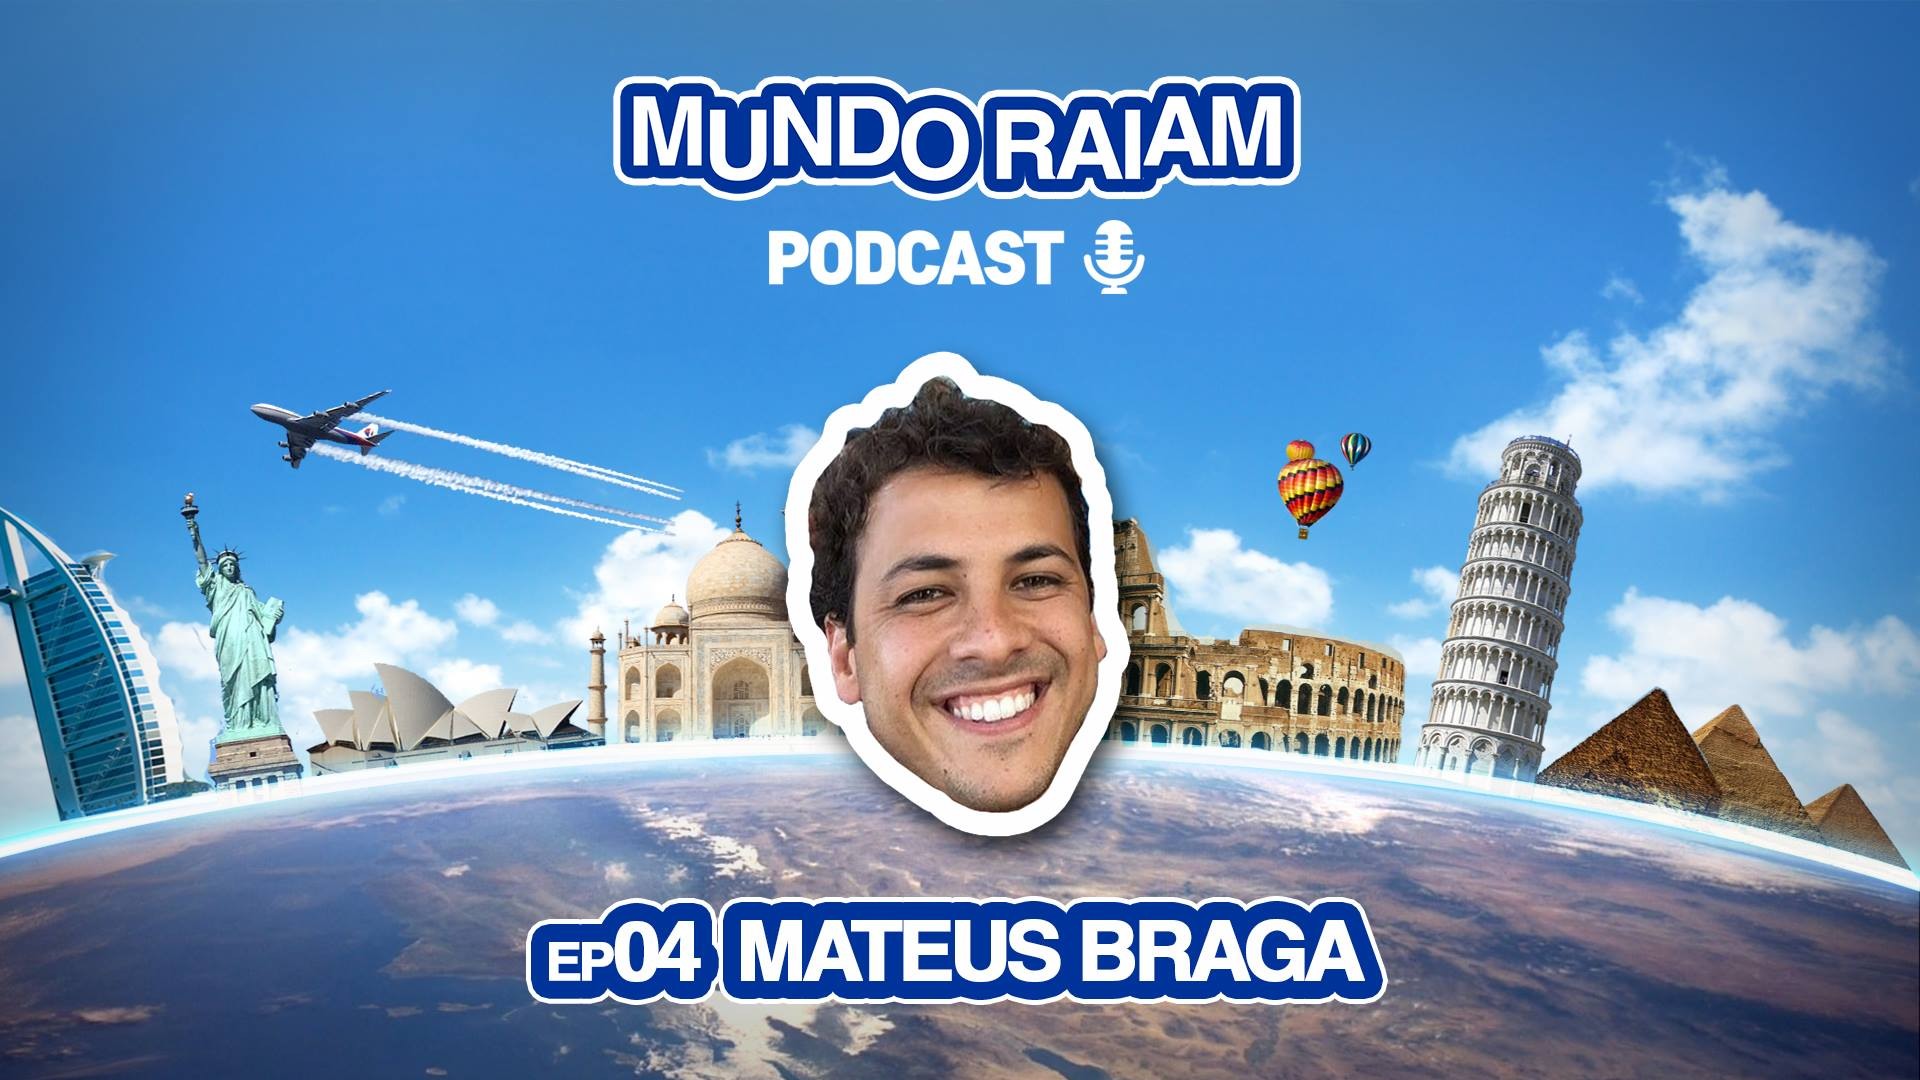 MundoRaiam Podcast EP04: Matheus Braga